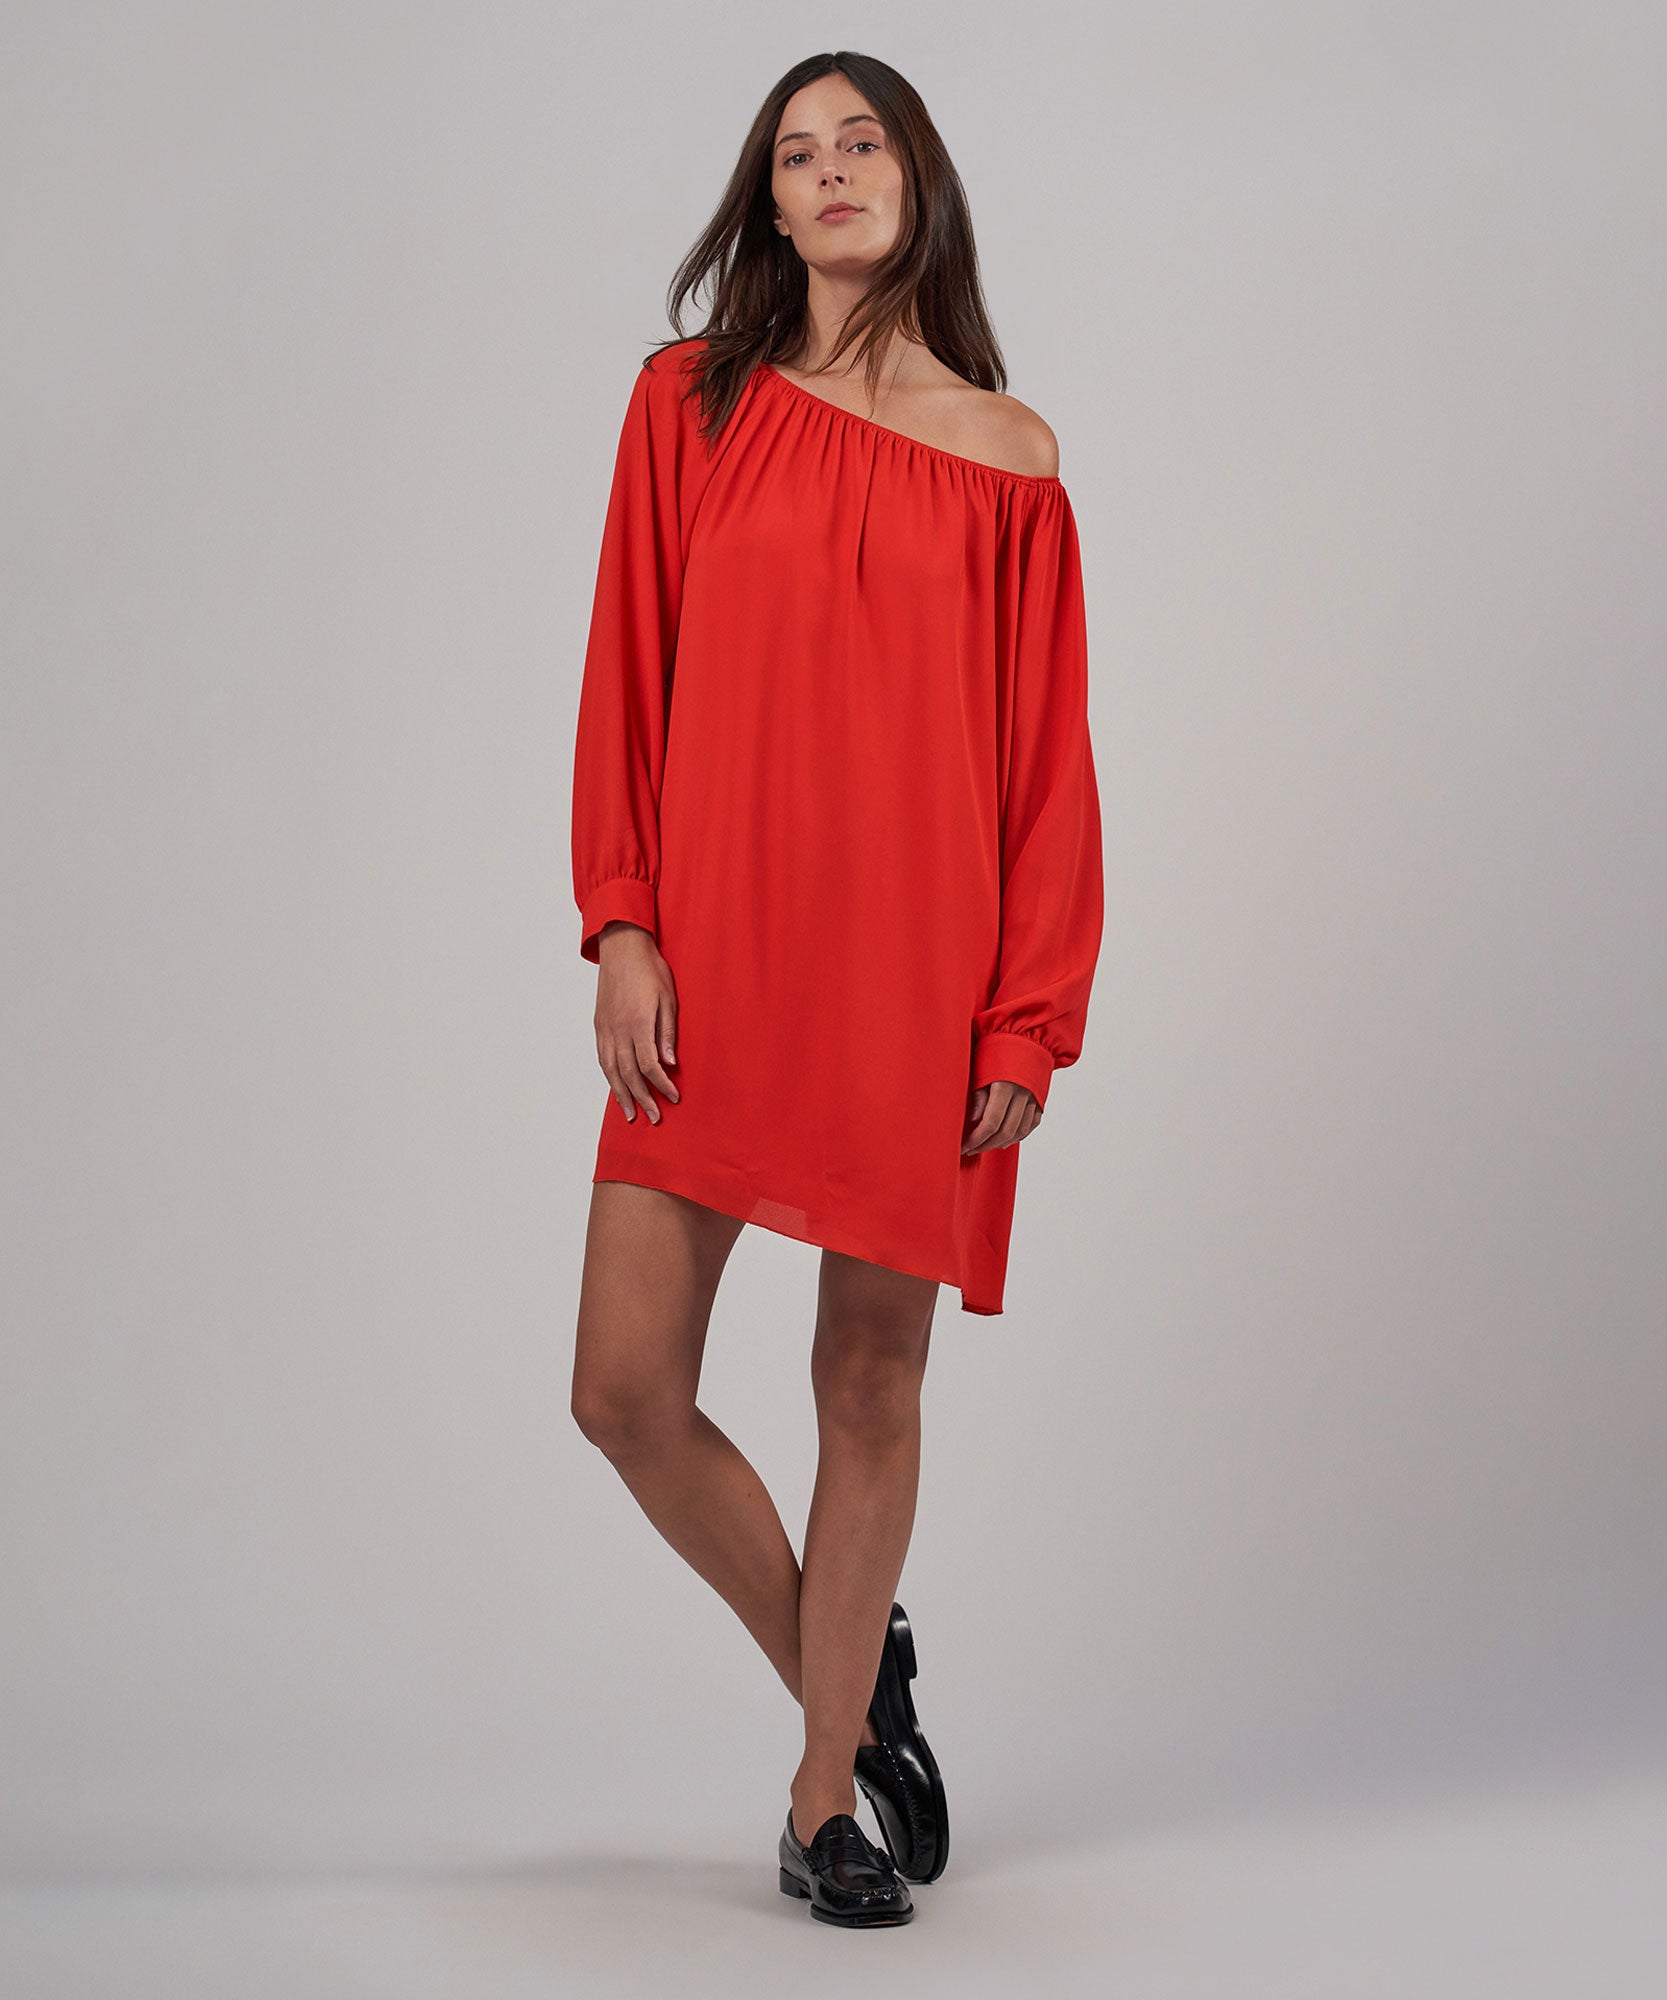 Flame Crepe Georgette Off The Shoulder Dress - Women's Dress by ATM Anthony Thomas Melillo